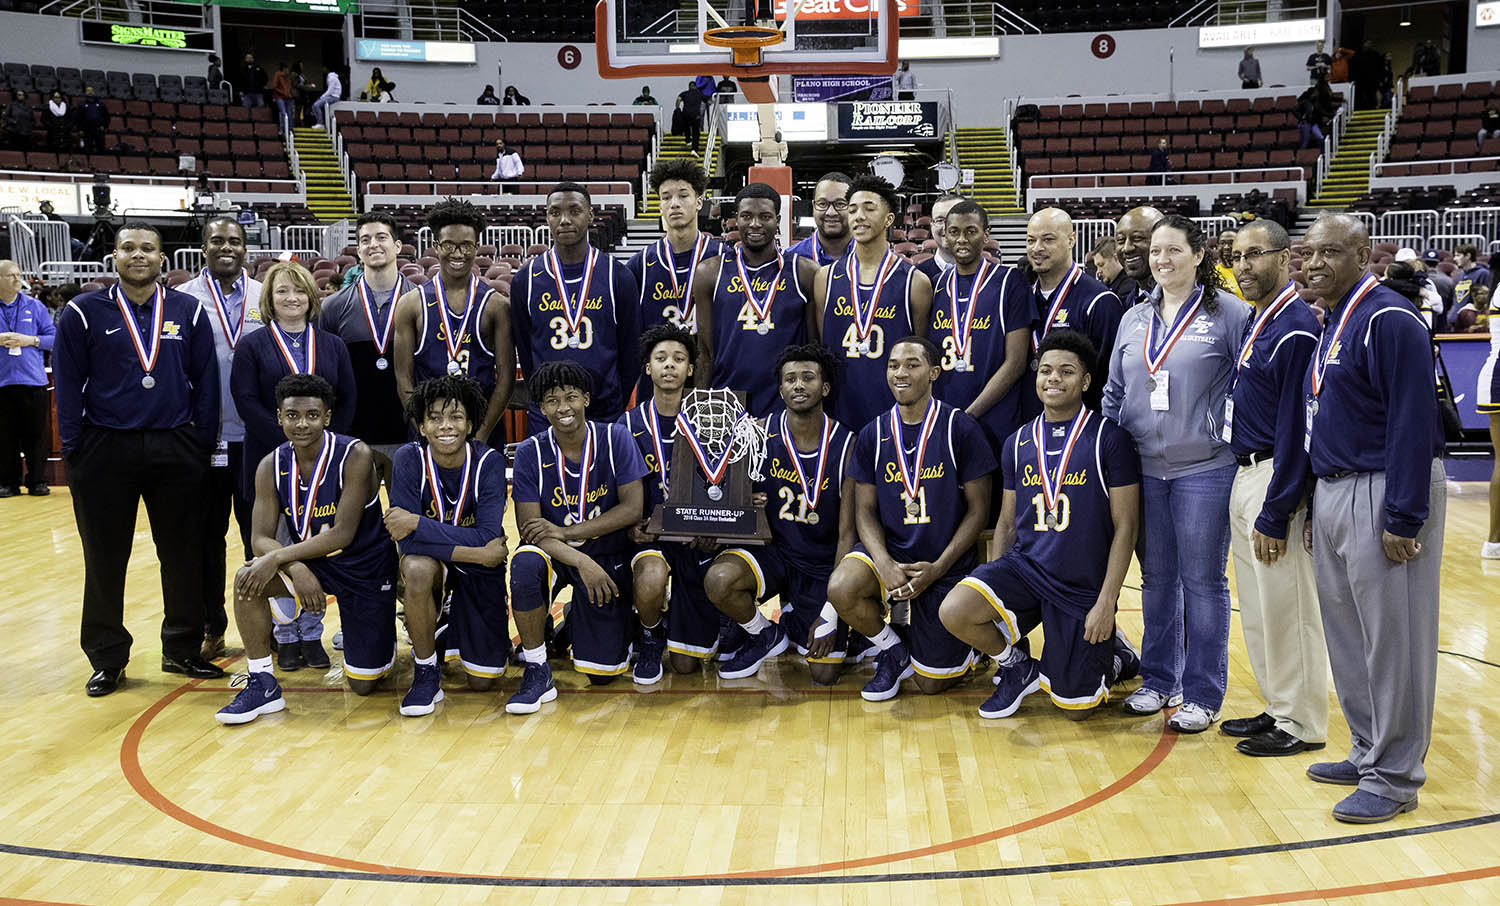 The Spartans pose with their runner-up trophy after falling to Morgan Park  during the 3A championship game at Carver Arena in Peoria, Ill., Saturday, March 17, 2018. [Ted Schurter/The State Journal-Register]